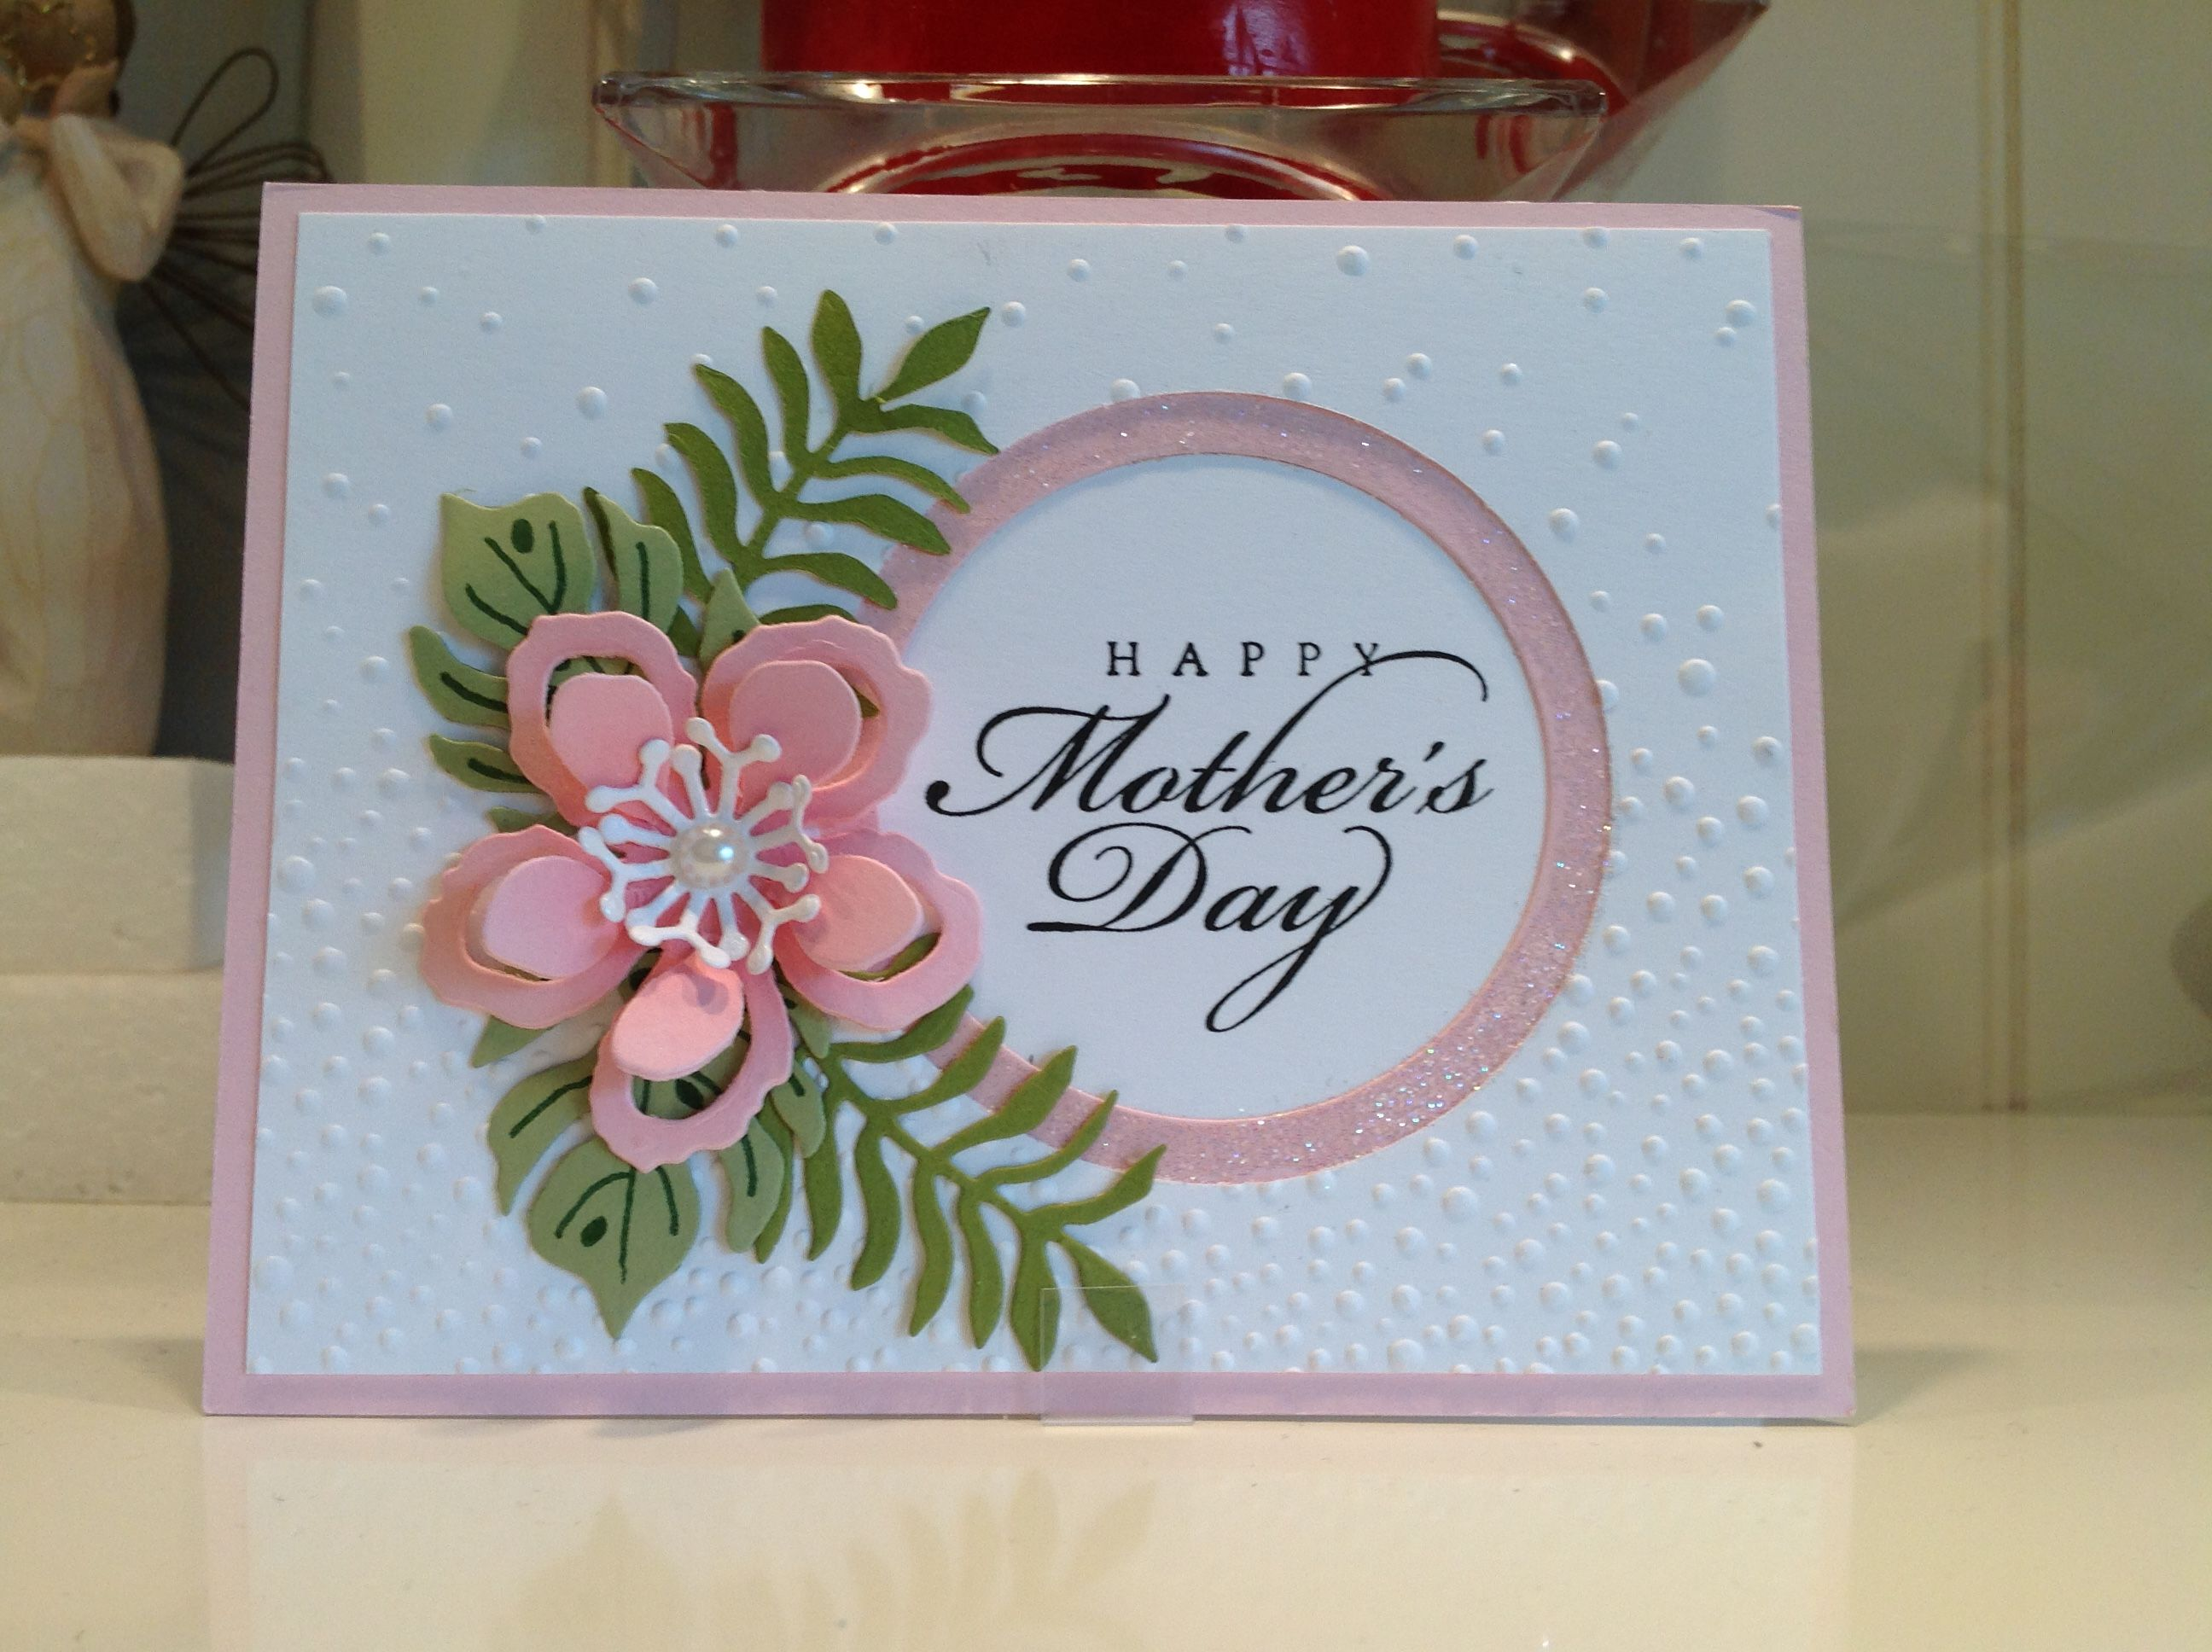 Hy Mothers Day Card Using Stampin Up